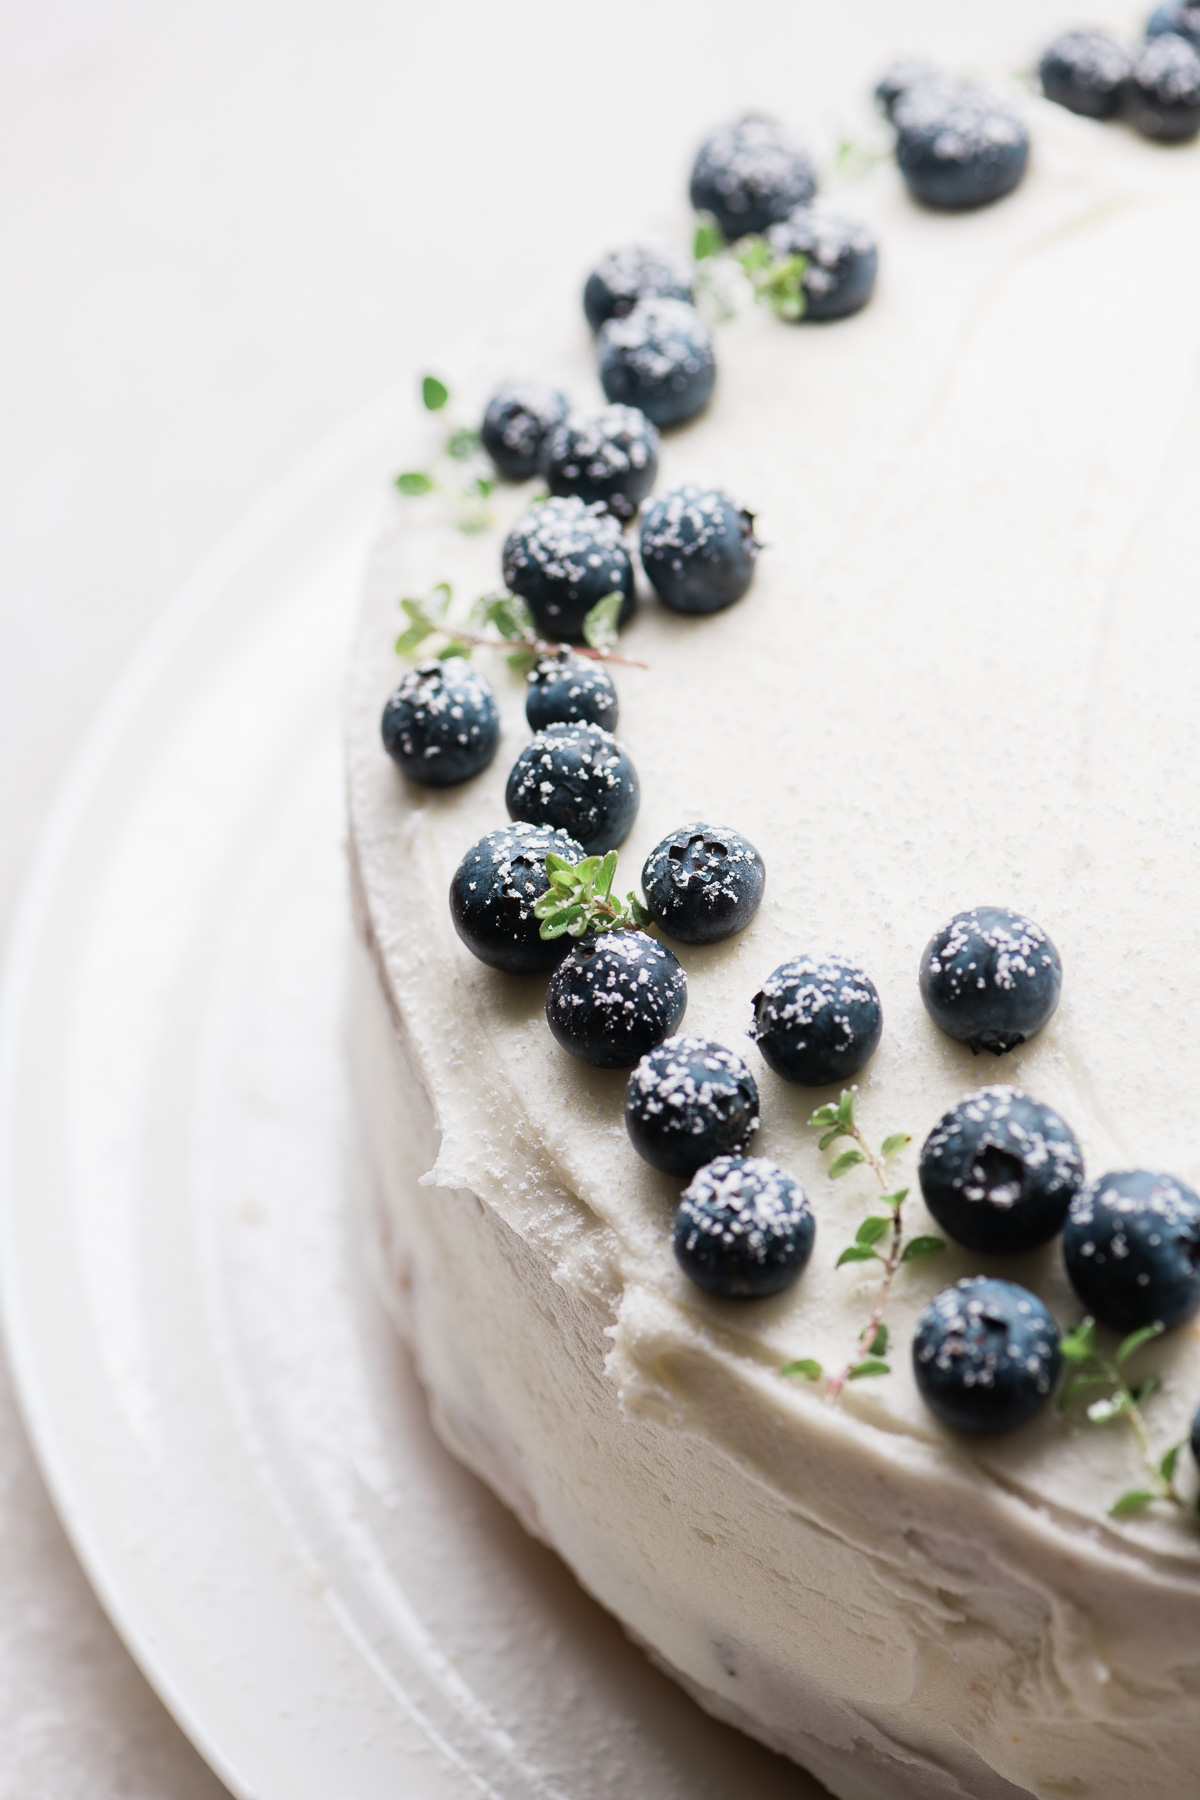 a blueberry lemon cake topped with fresh berries